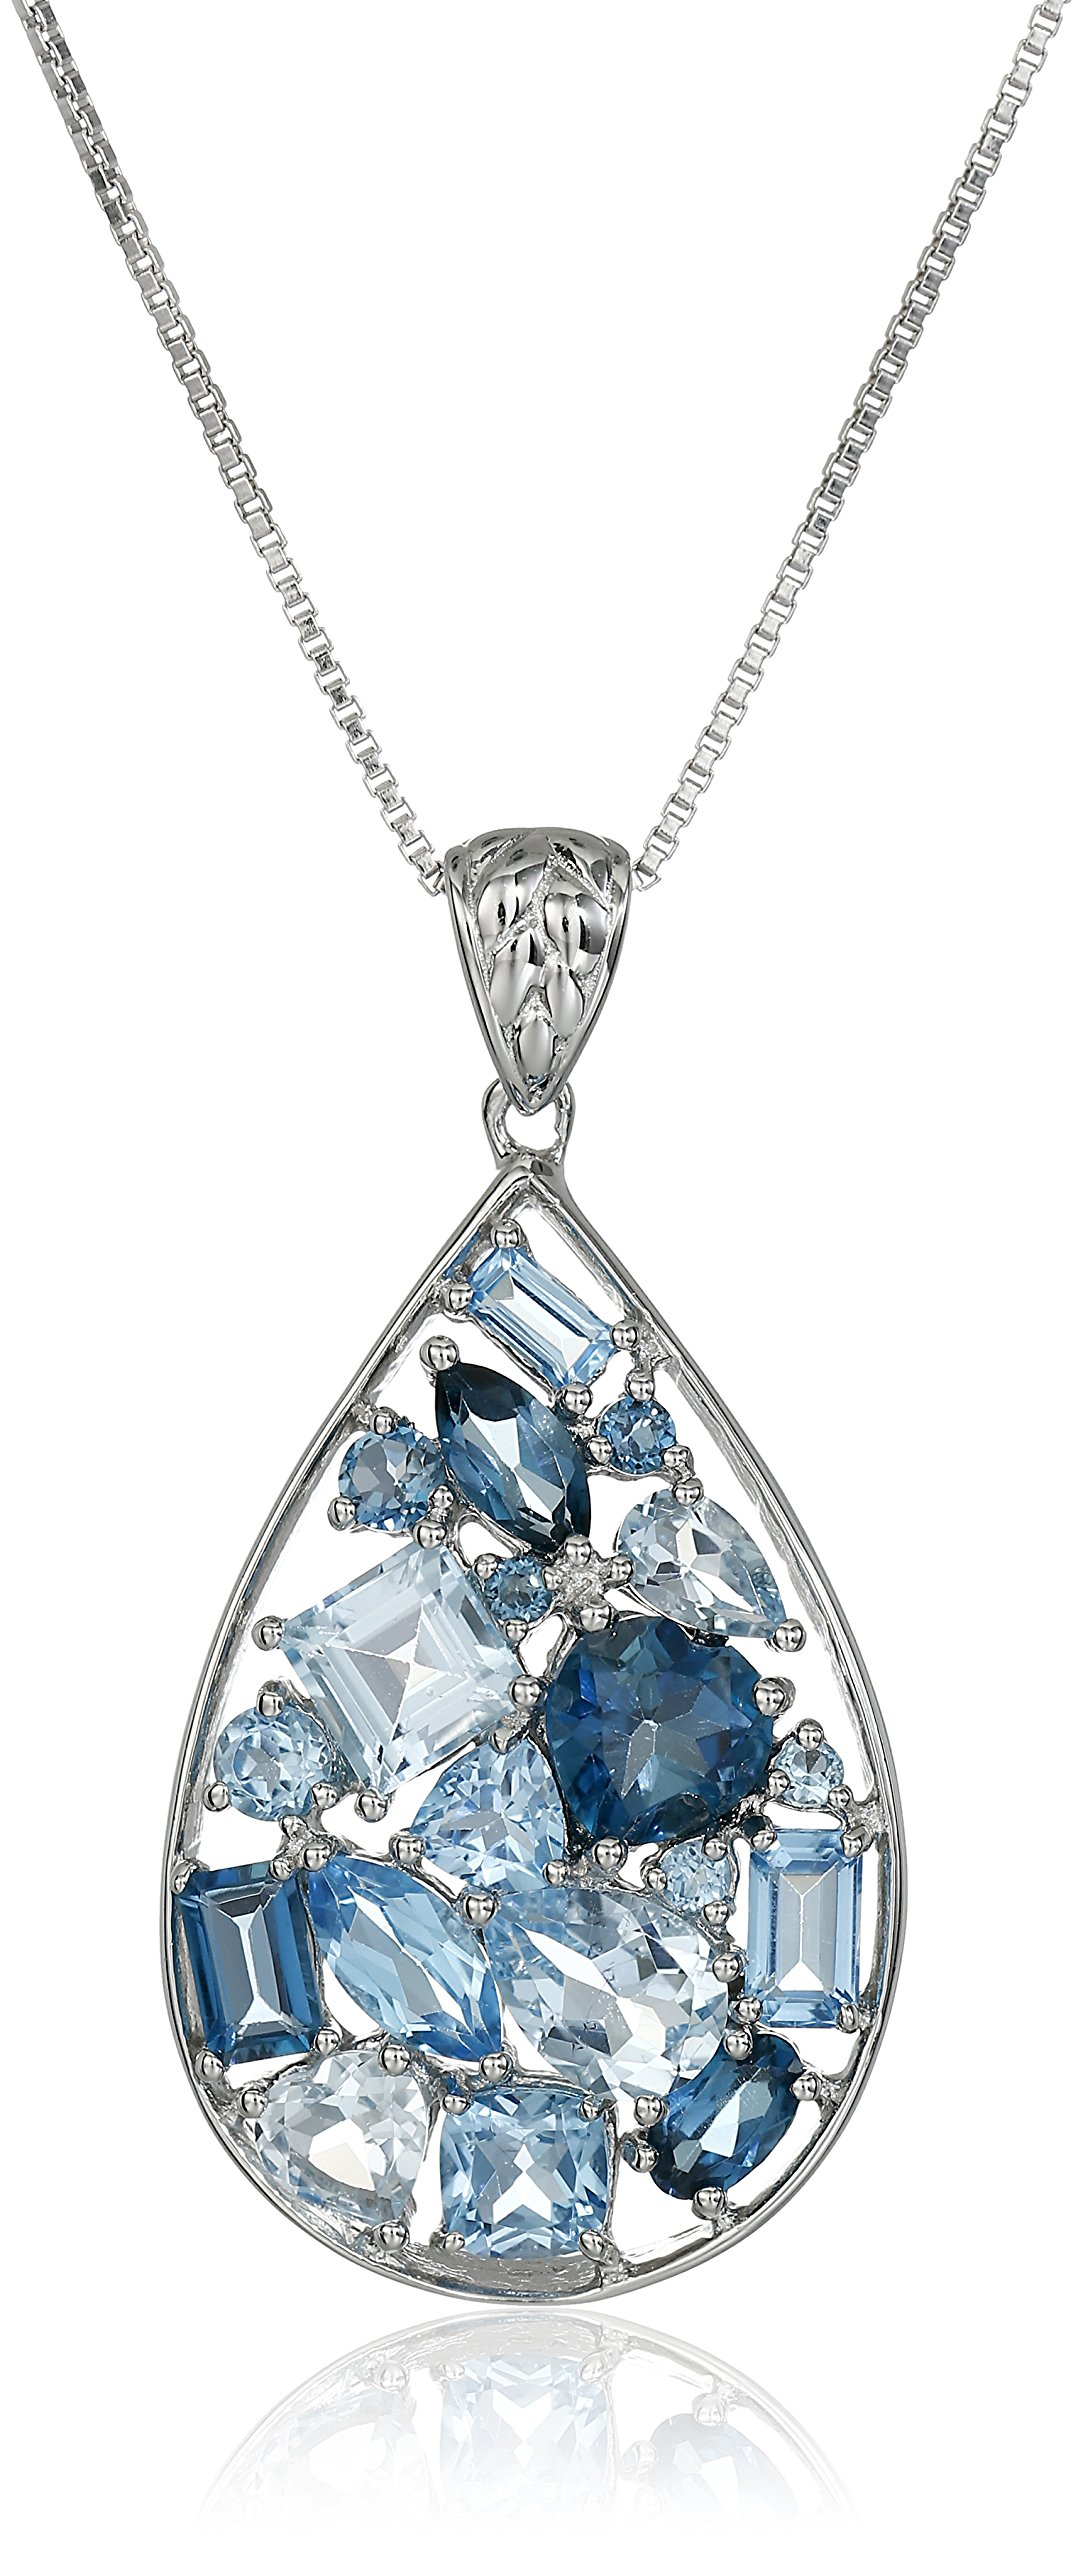 Sterling Silver Pendant Necklace with Mixed Topaz